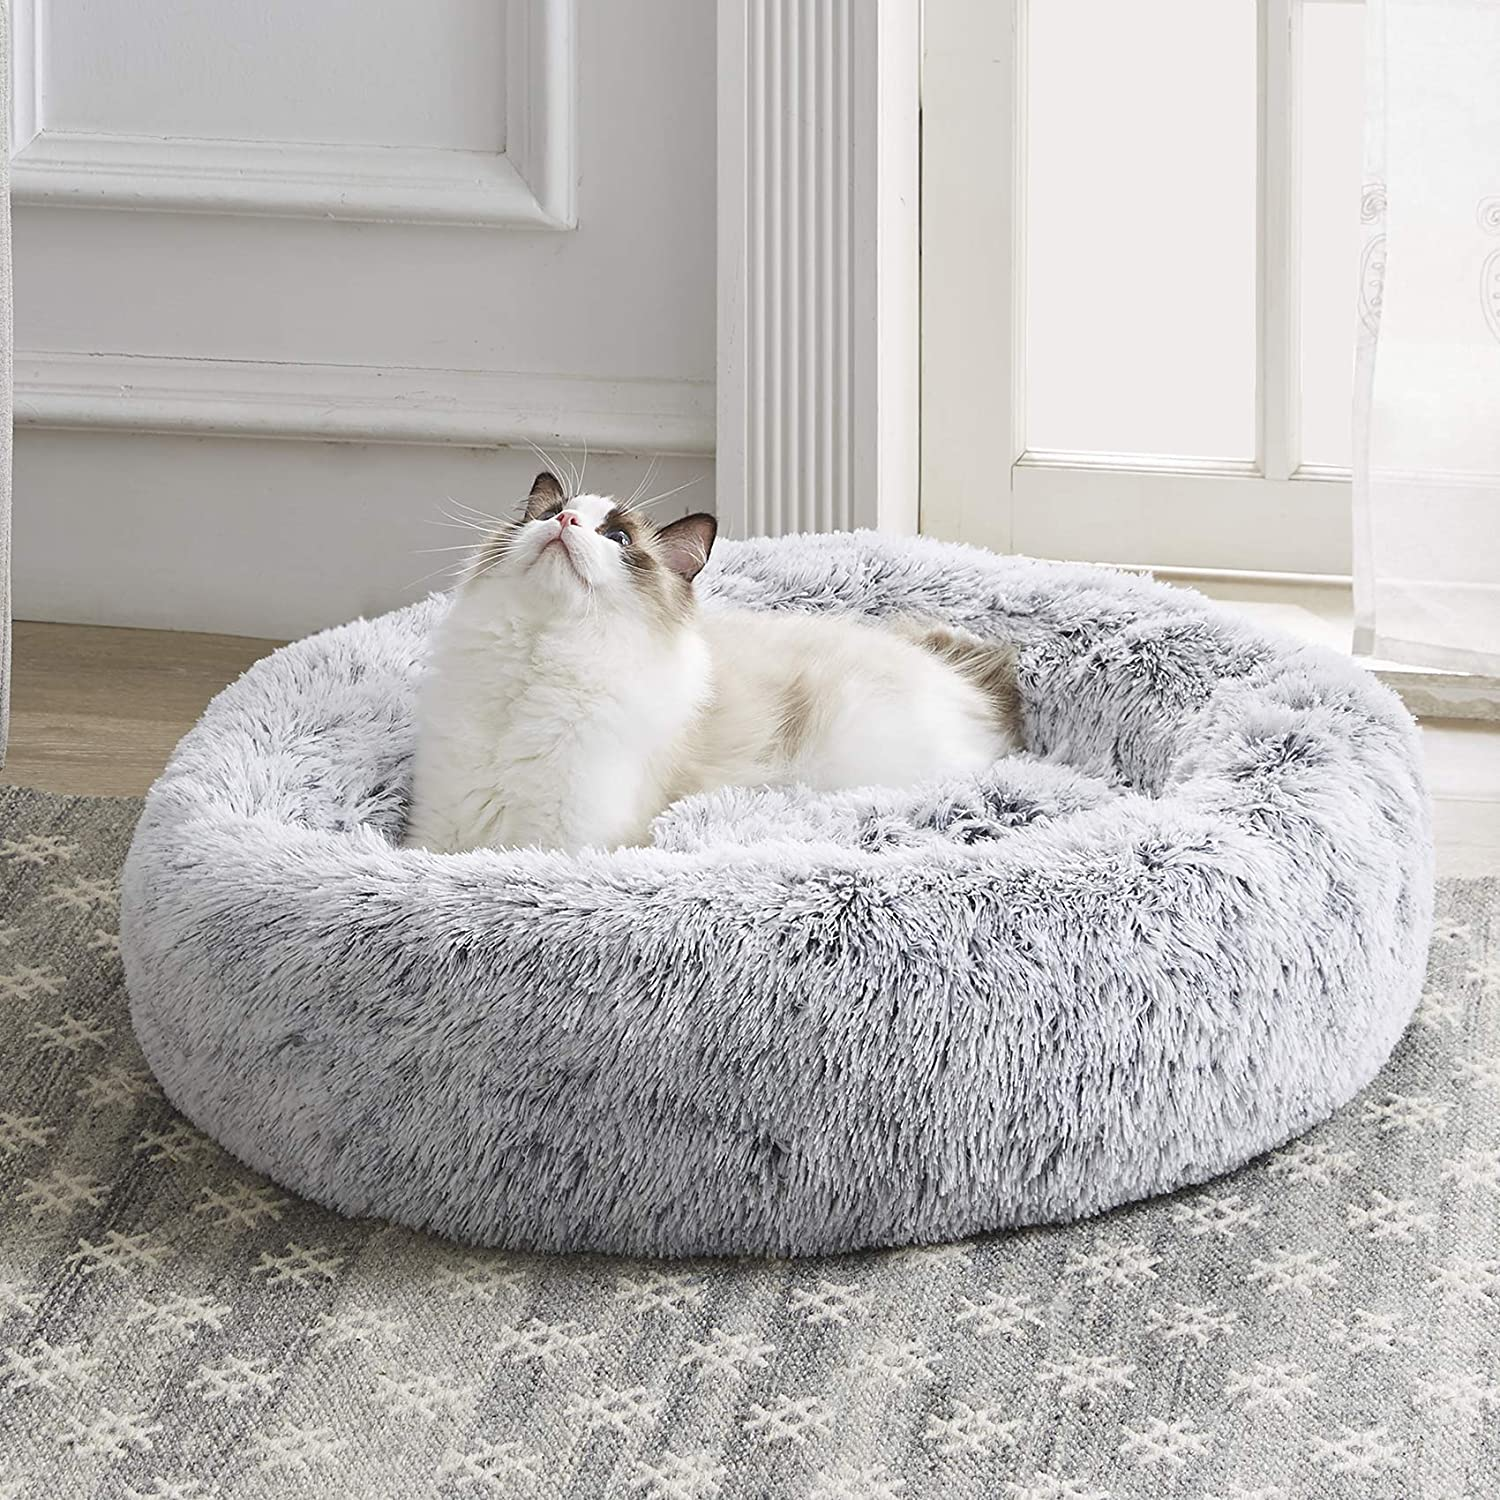 "Western Home Faux Fur Dog Bed & Cat Bed, Original Calming Pup Dog Bed for Small Medium Pet, Anti Anxiety Donut Cuddler Round Warm Bed for Dogs with Fluffy Comfy Plush Kennel Cushion(20"",24"",27"")"